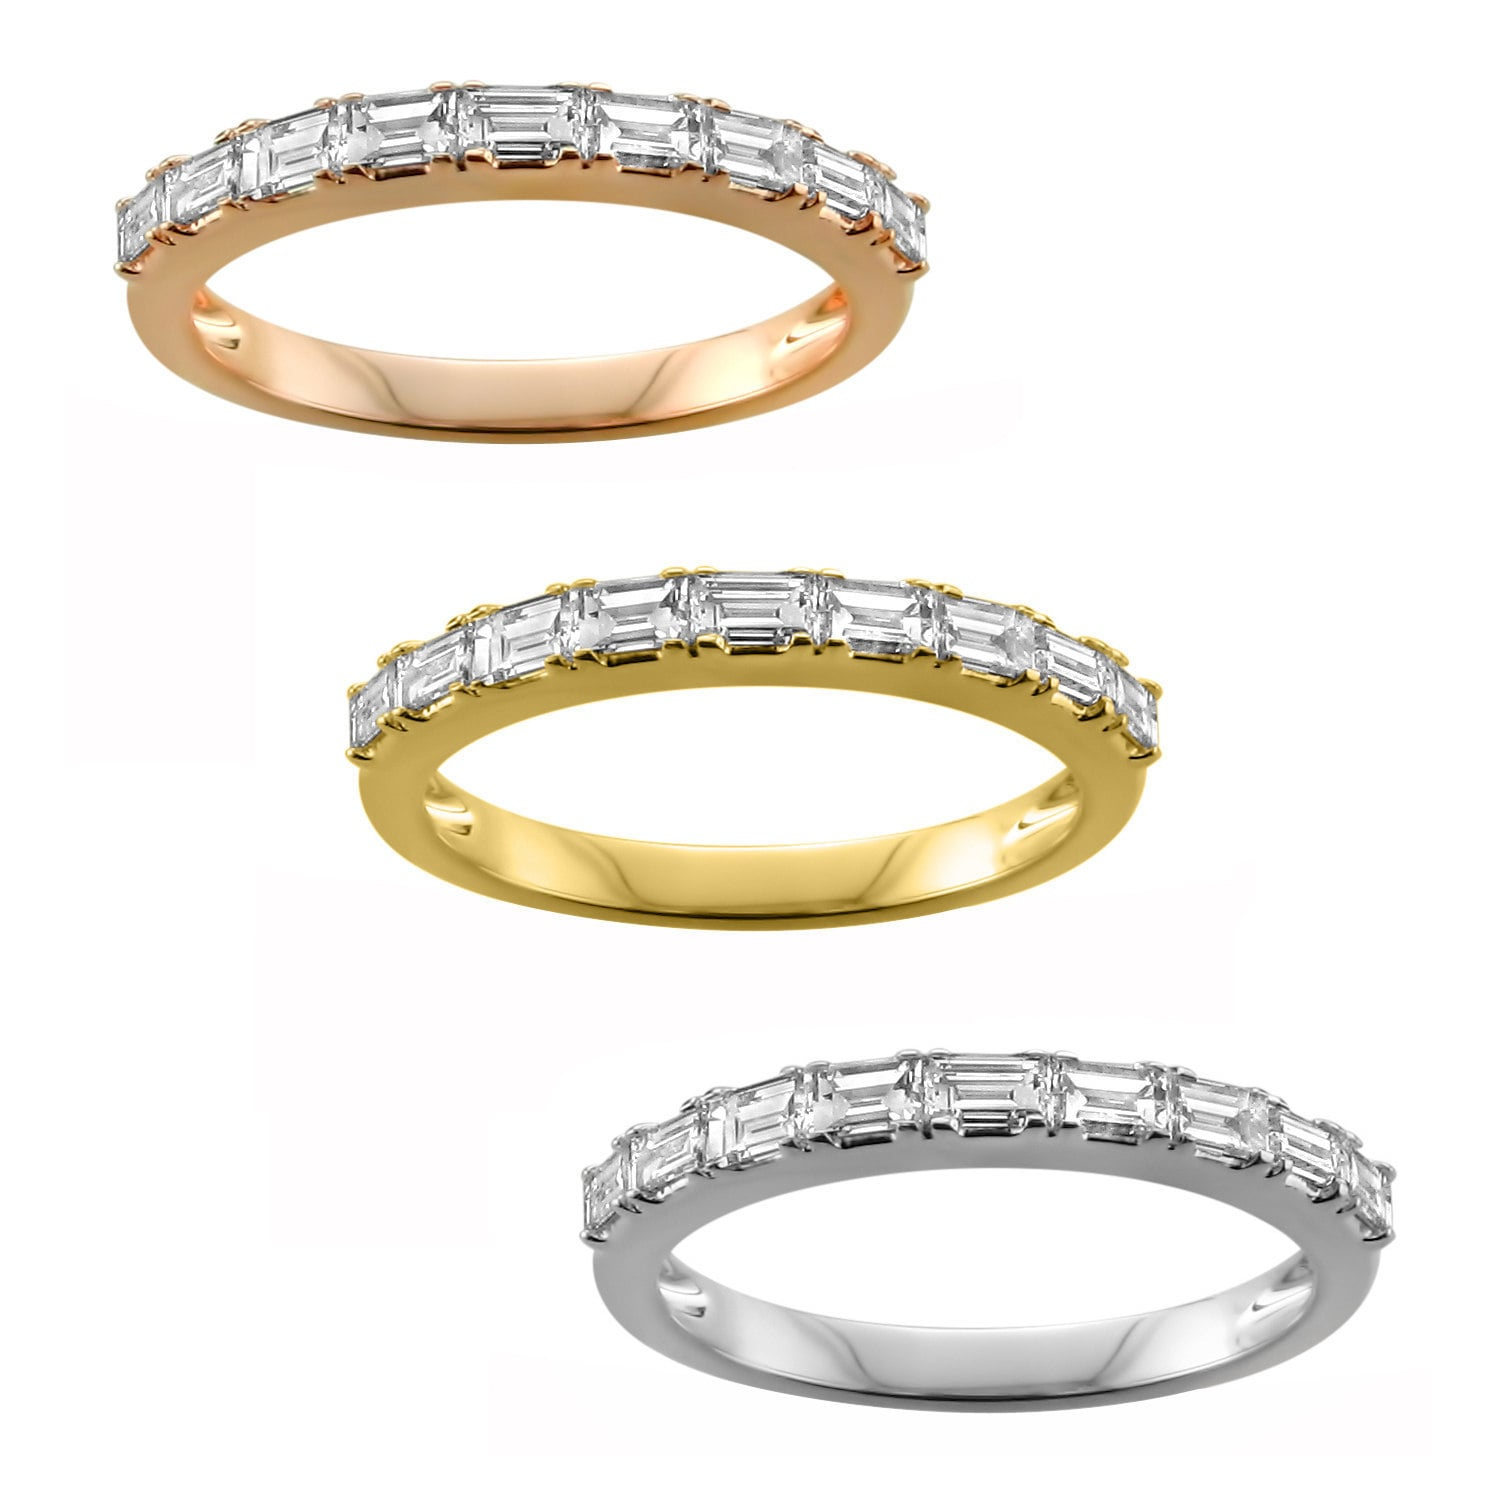 j id ring co at bands rings jewelry tiffany platinum and sale diamond wedding baguette z for band